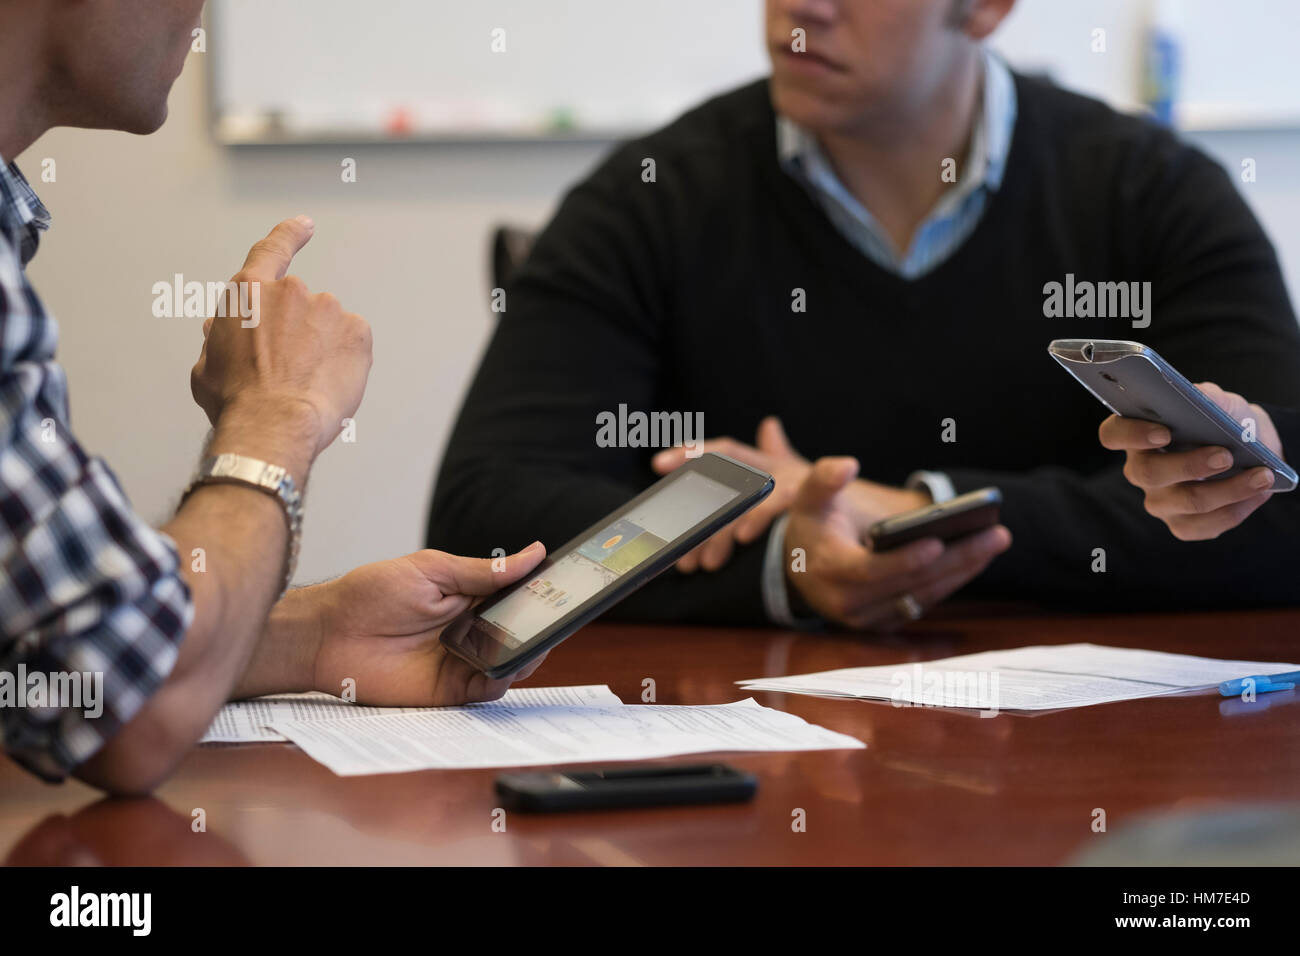 Mid section of business people using mobile devices - Stock Image